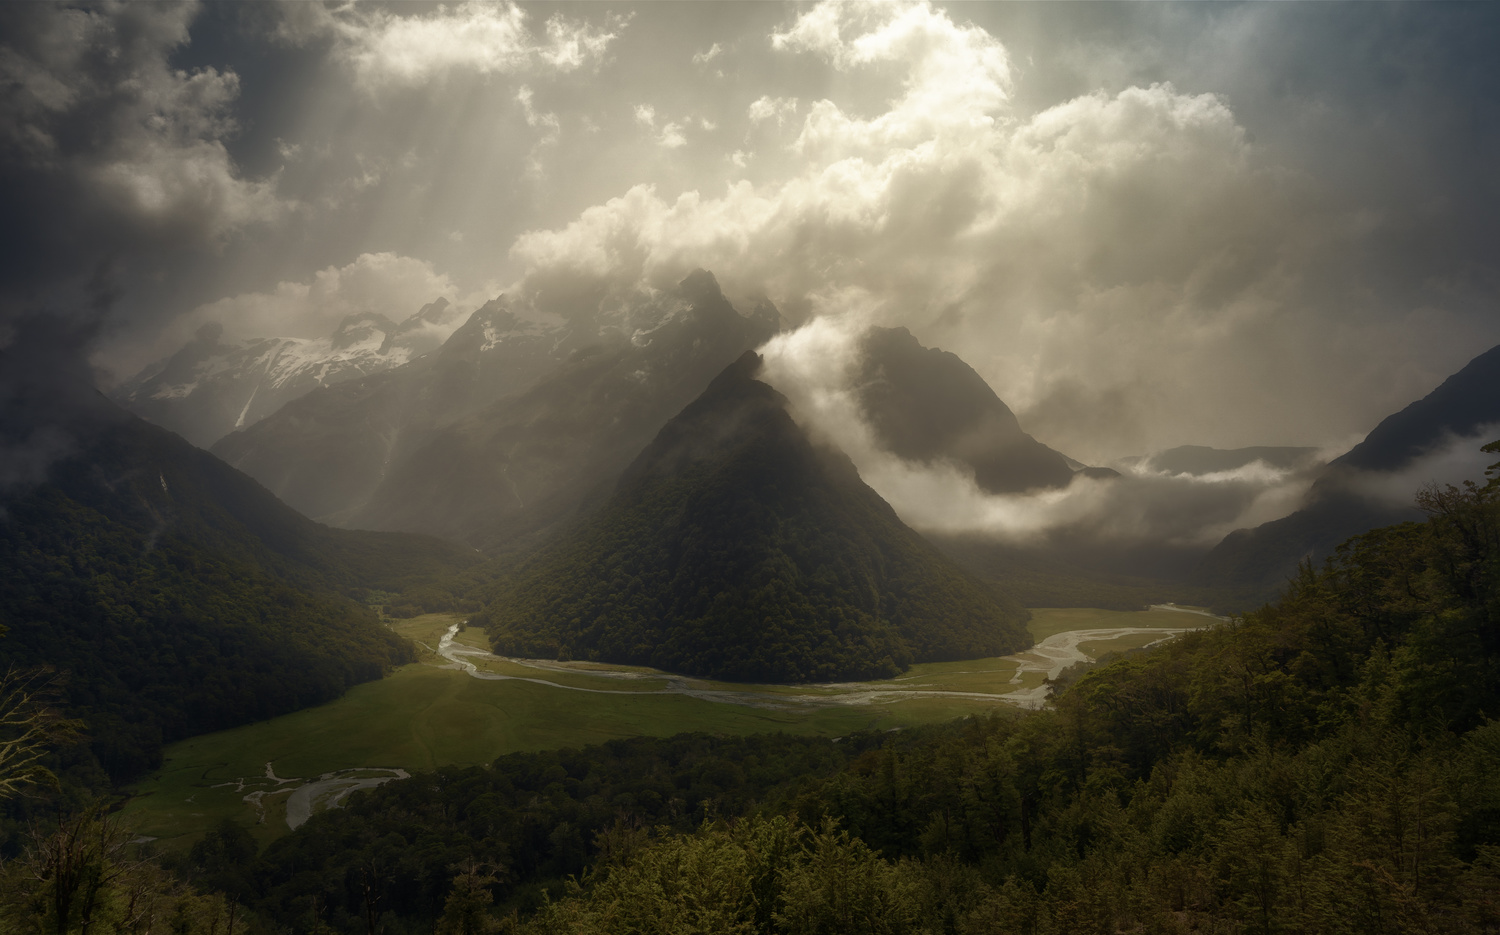 Routeburn Flats fighting the strong light by DaniGviews /Daniel